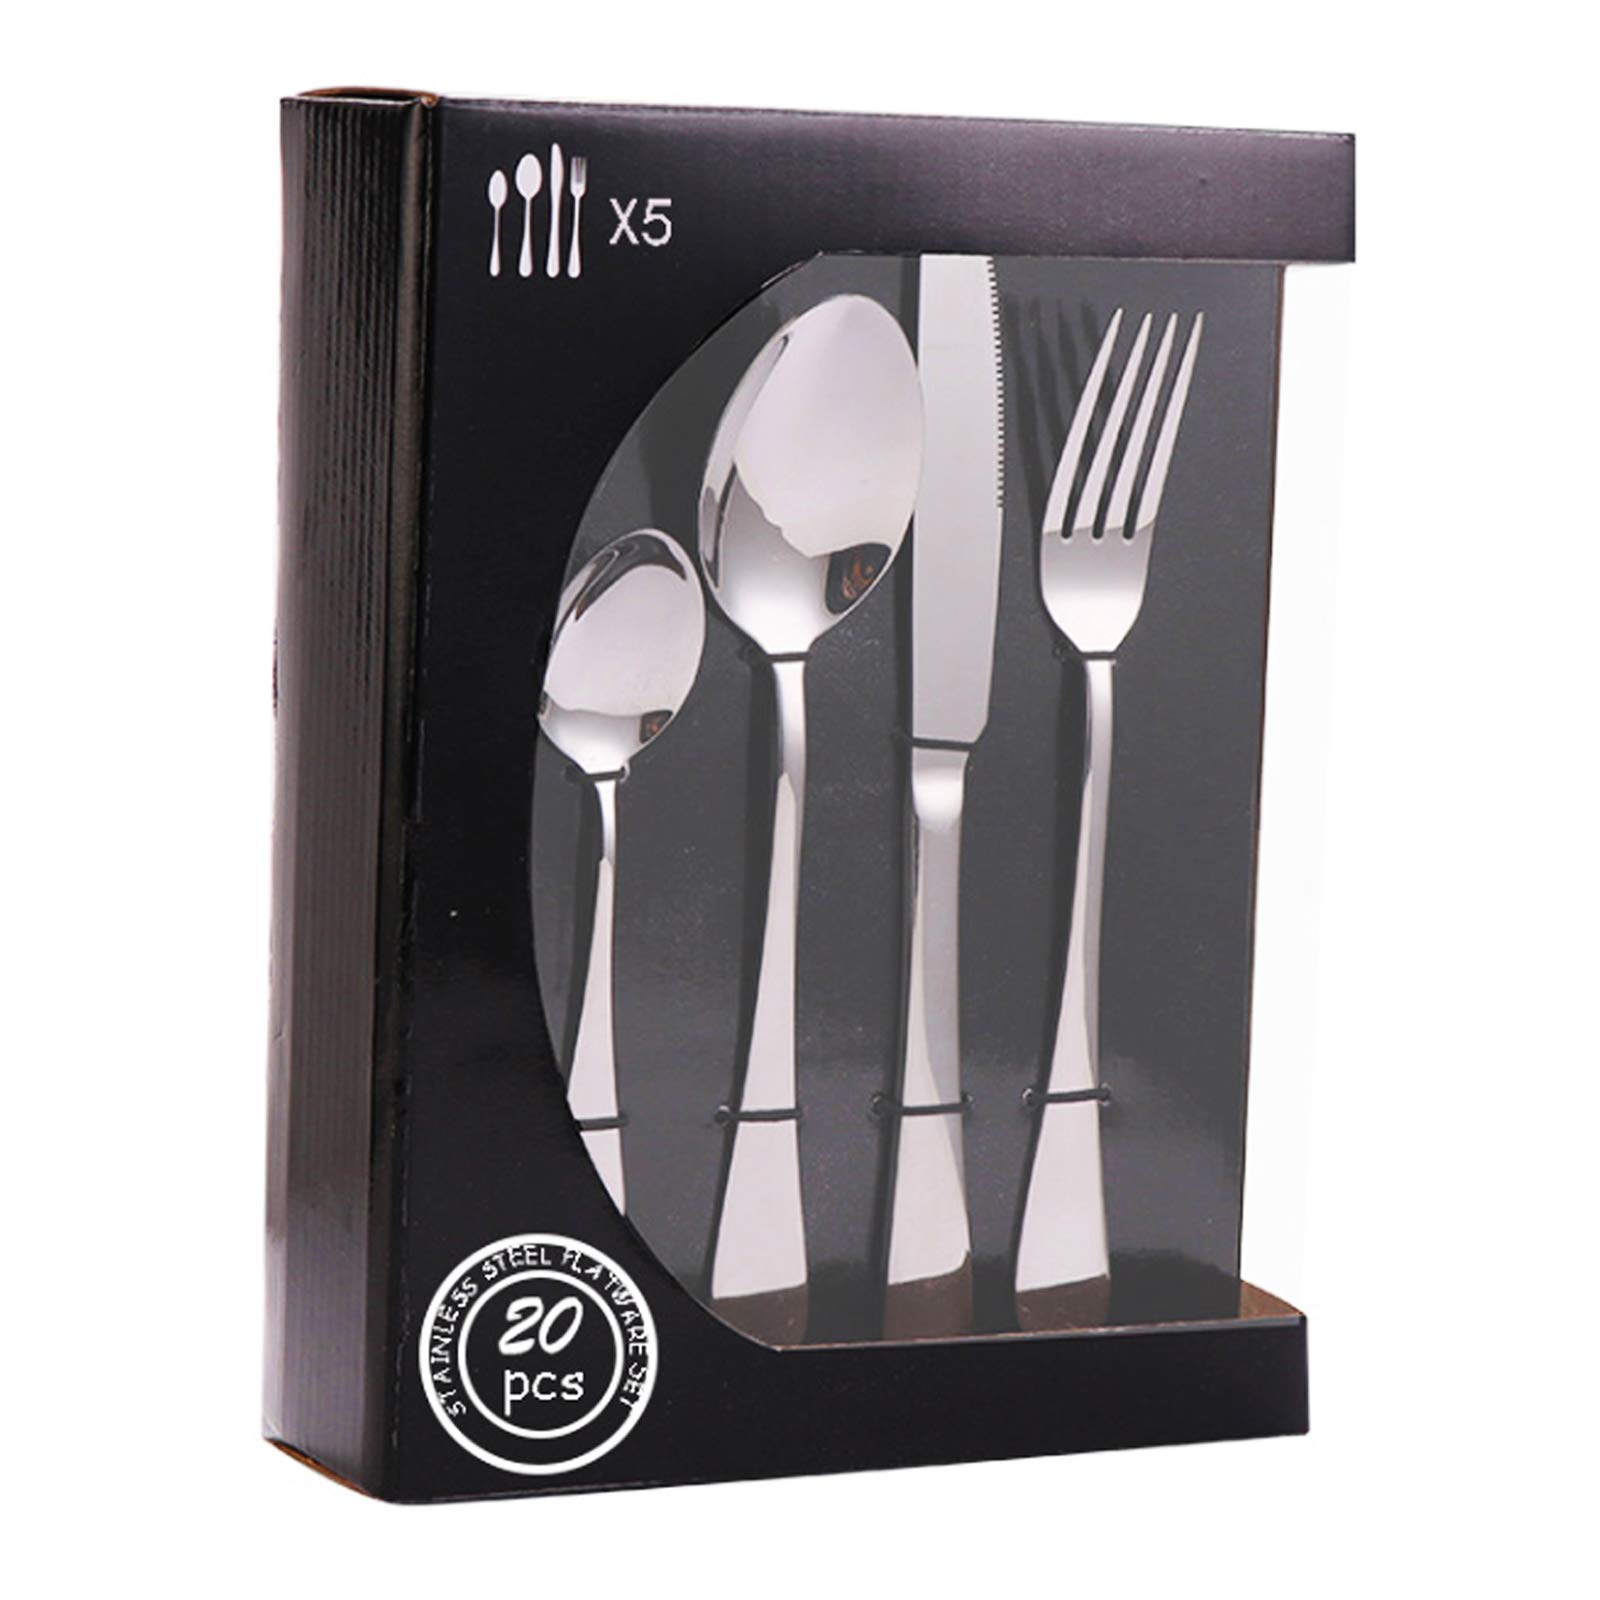 20 Piece – Silverware Flatware Cutlery Set Service for 5 Included Knife/Fork/Spoon